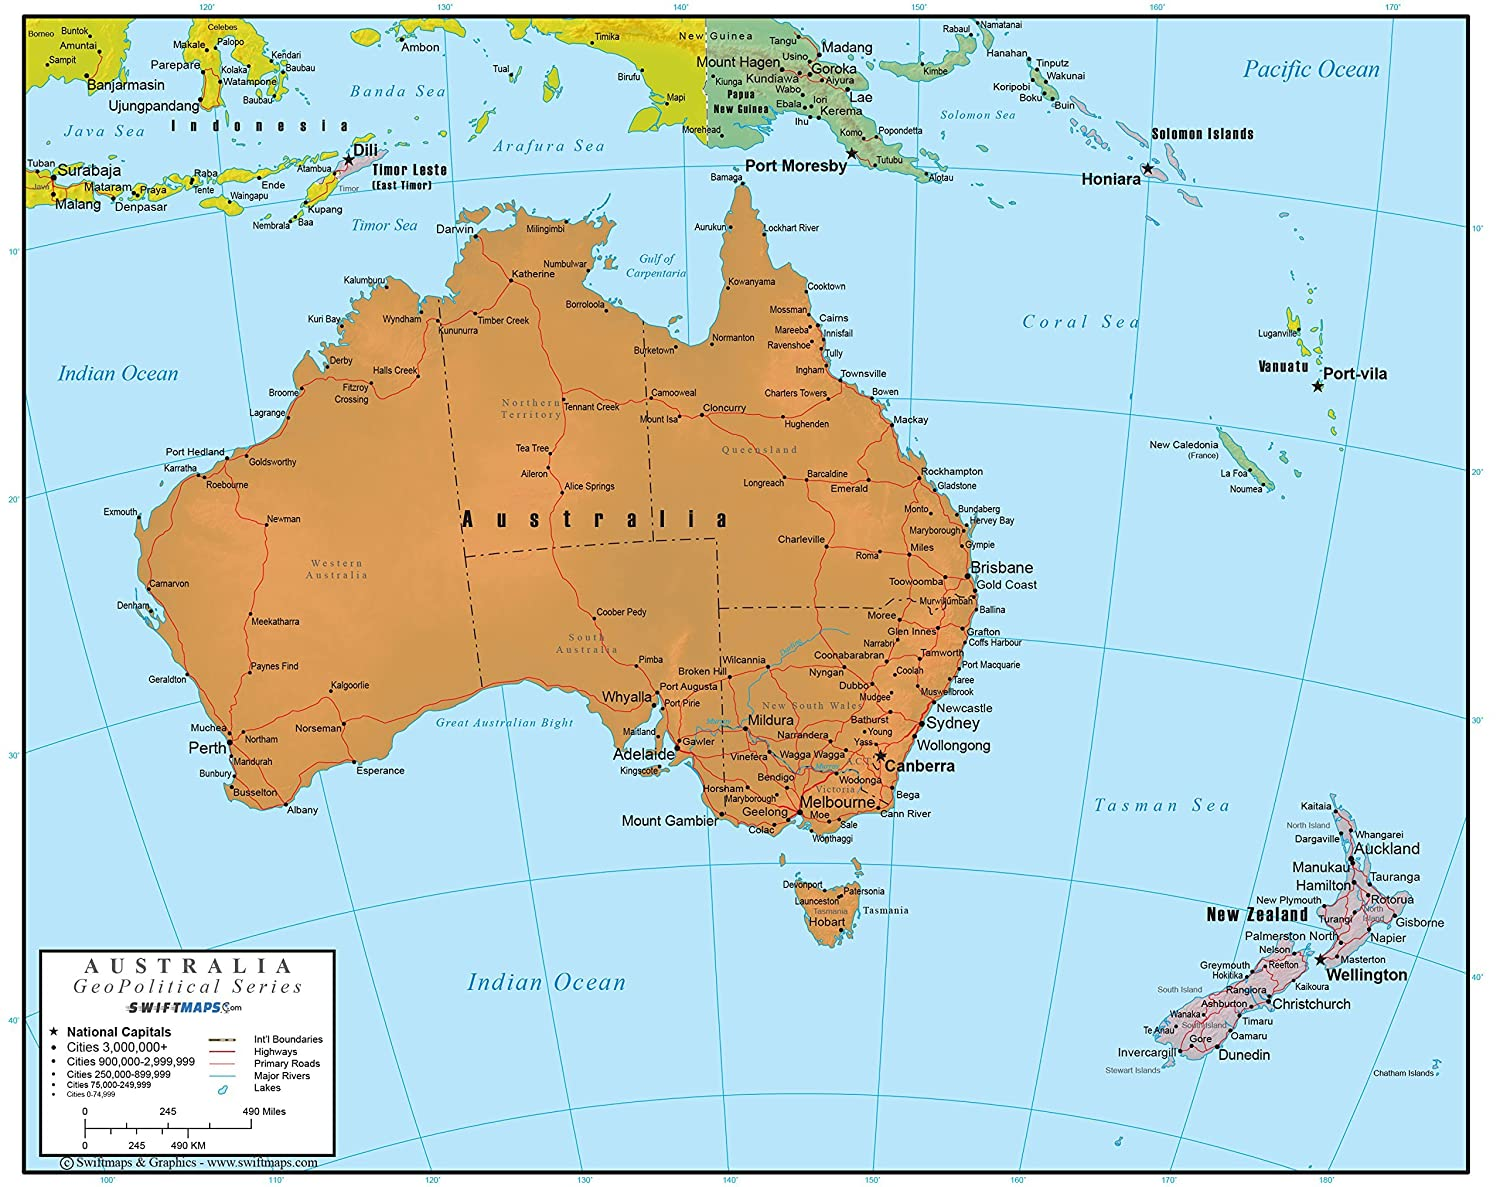 Australia Wall Map GeoPolitical Edition by Swiftmaps (18x22 Paper) on indonesia map with cities, north america and australia map, japan and australia map, vanuatu and australia map, china and australia map, indonesia on map, korea and australia map, asia and australia map, malaysia and australia map, south australia map, india and australia map, sydney and australia map, new zealand and australia map, costa rica and australia map, indonesia bali lombok map, papua new guinea and australia map, solomon islands and australia map, black and white australia map, oceania and australia map, simple australia map,